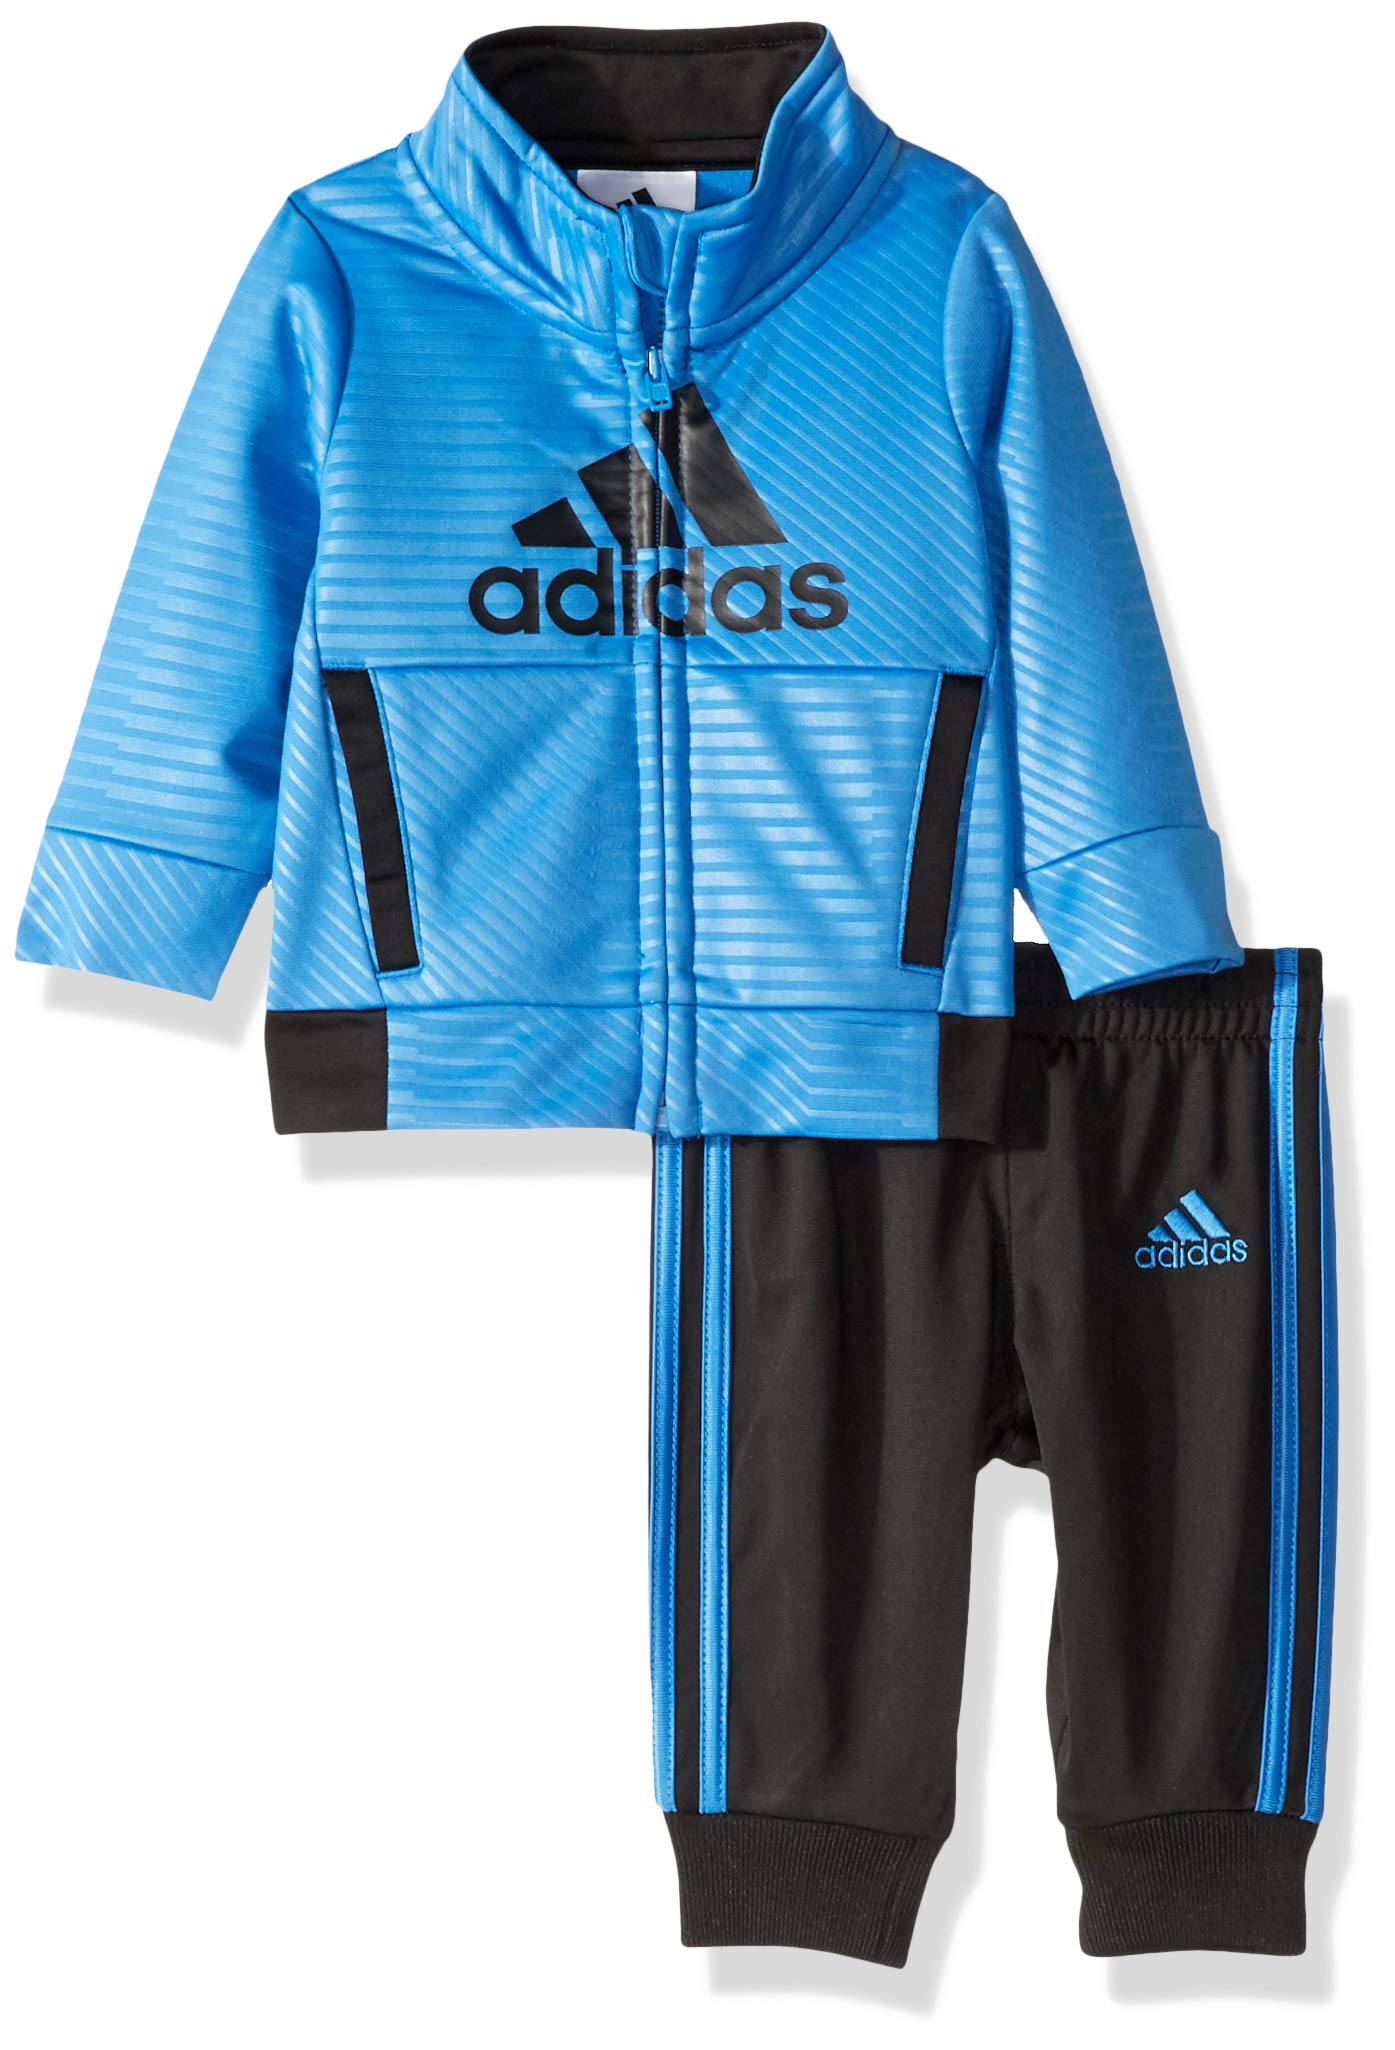 adidas Baby Boys BOS Tricot Jogger Tracksuit 2-Piece Set, Strong Collegiate Navy, 9 Months by adidas